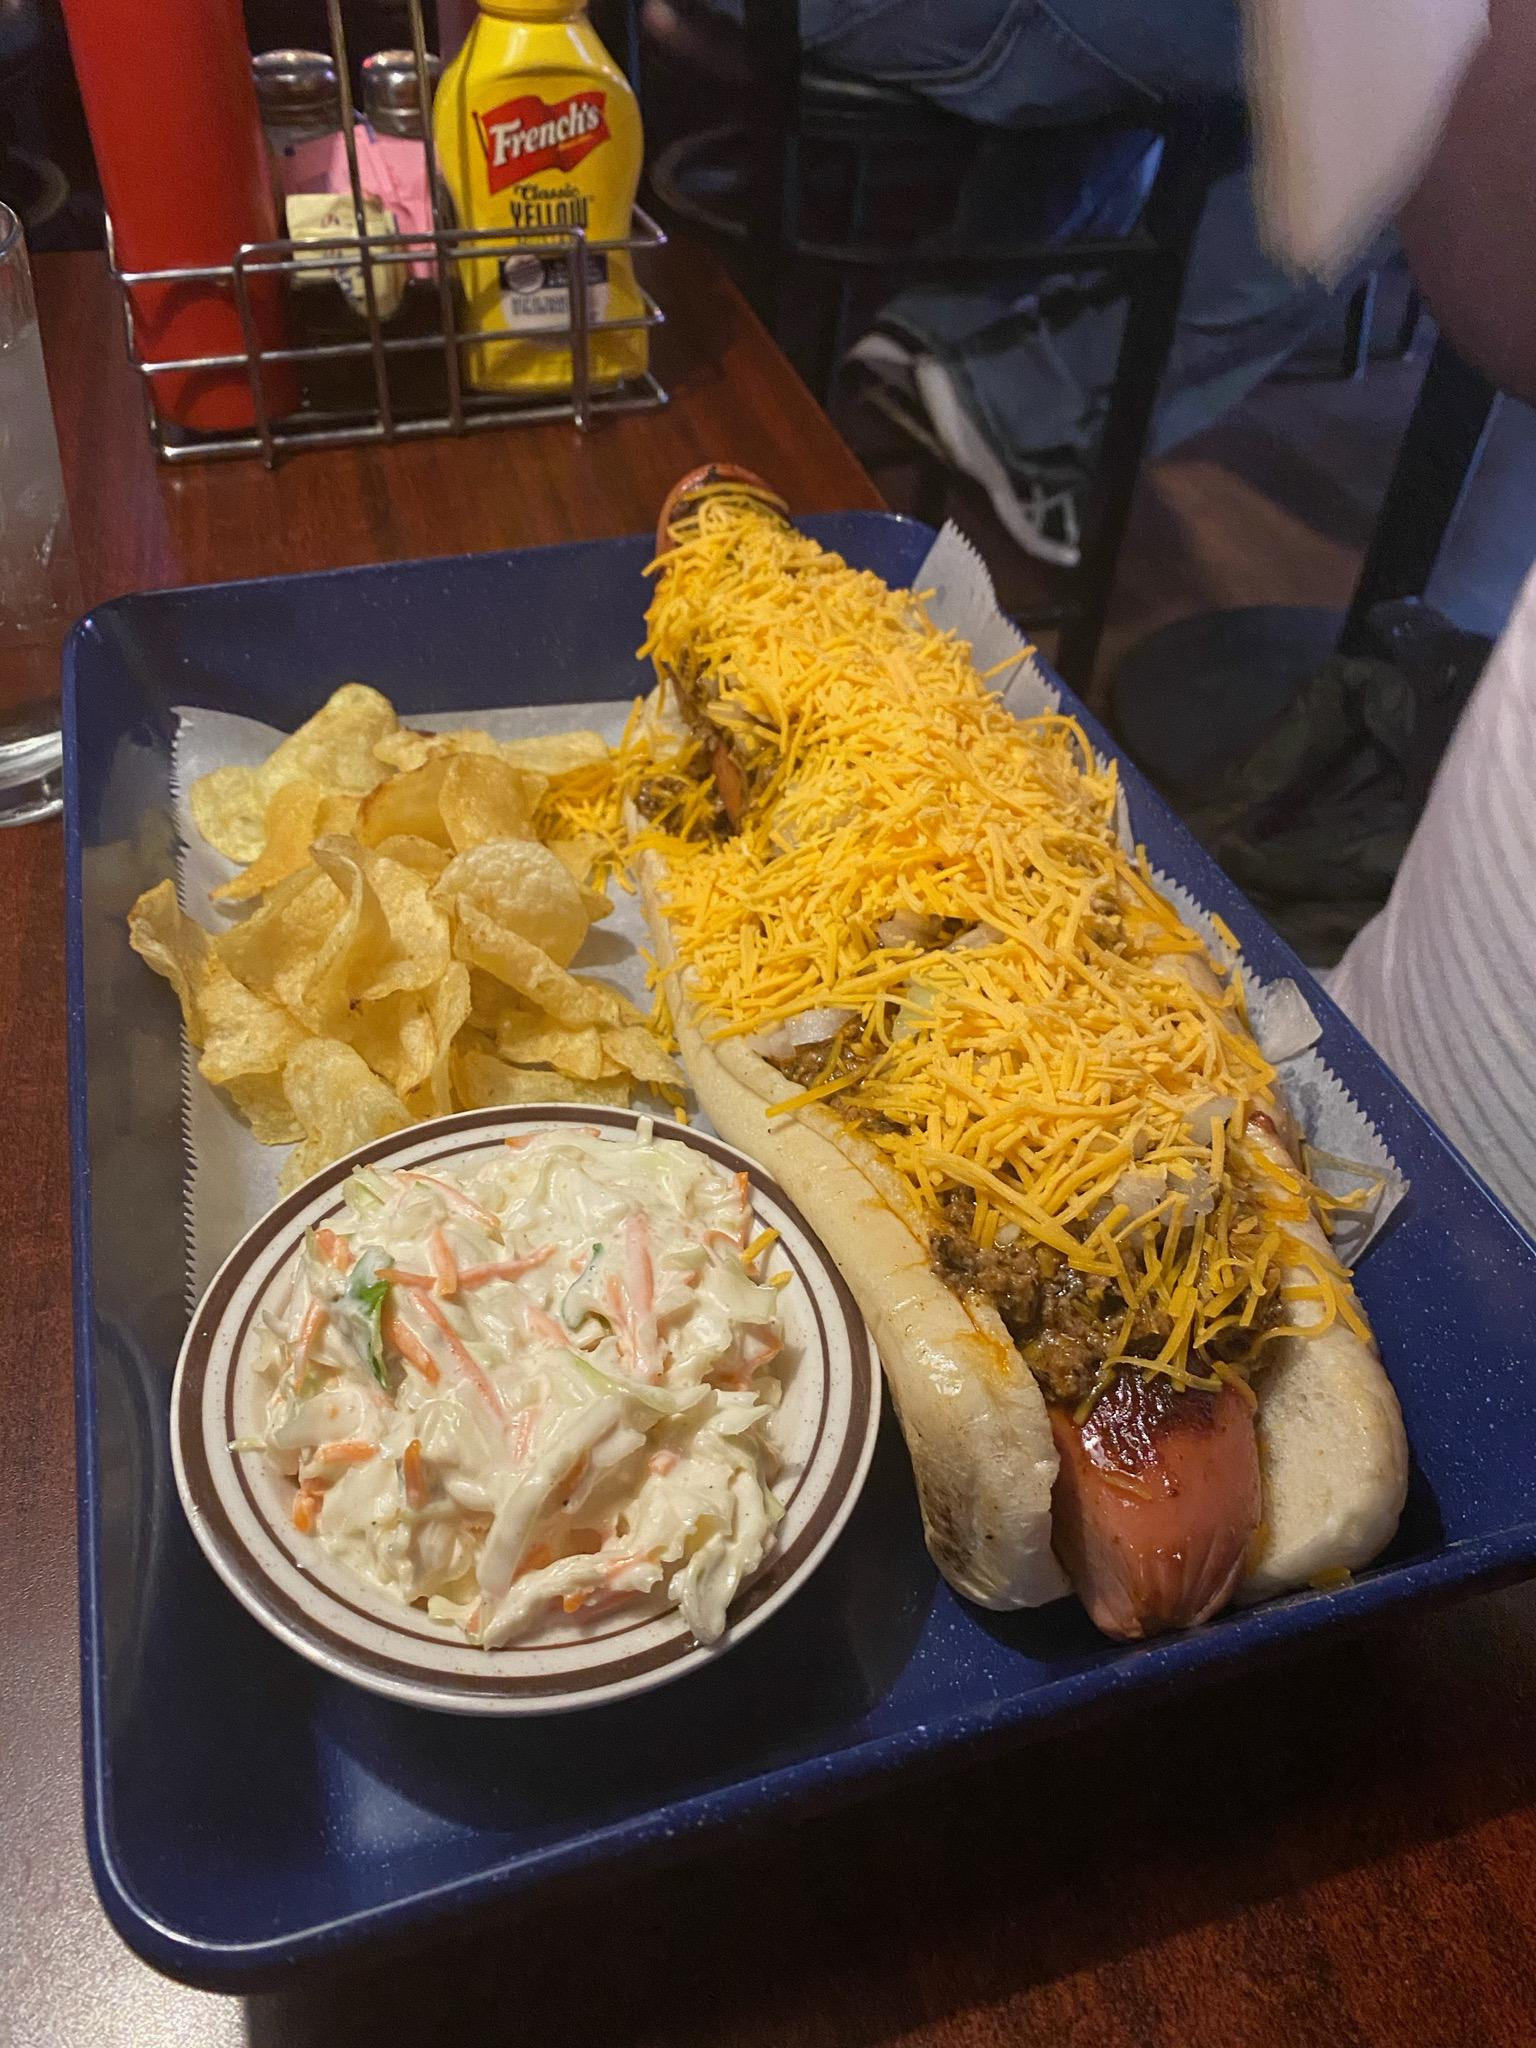 I ate a footlong, 1 lb. chili cheese dog